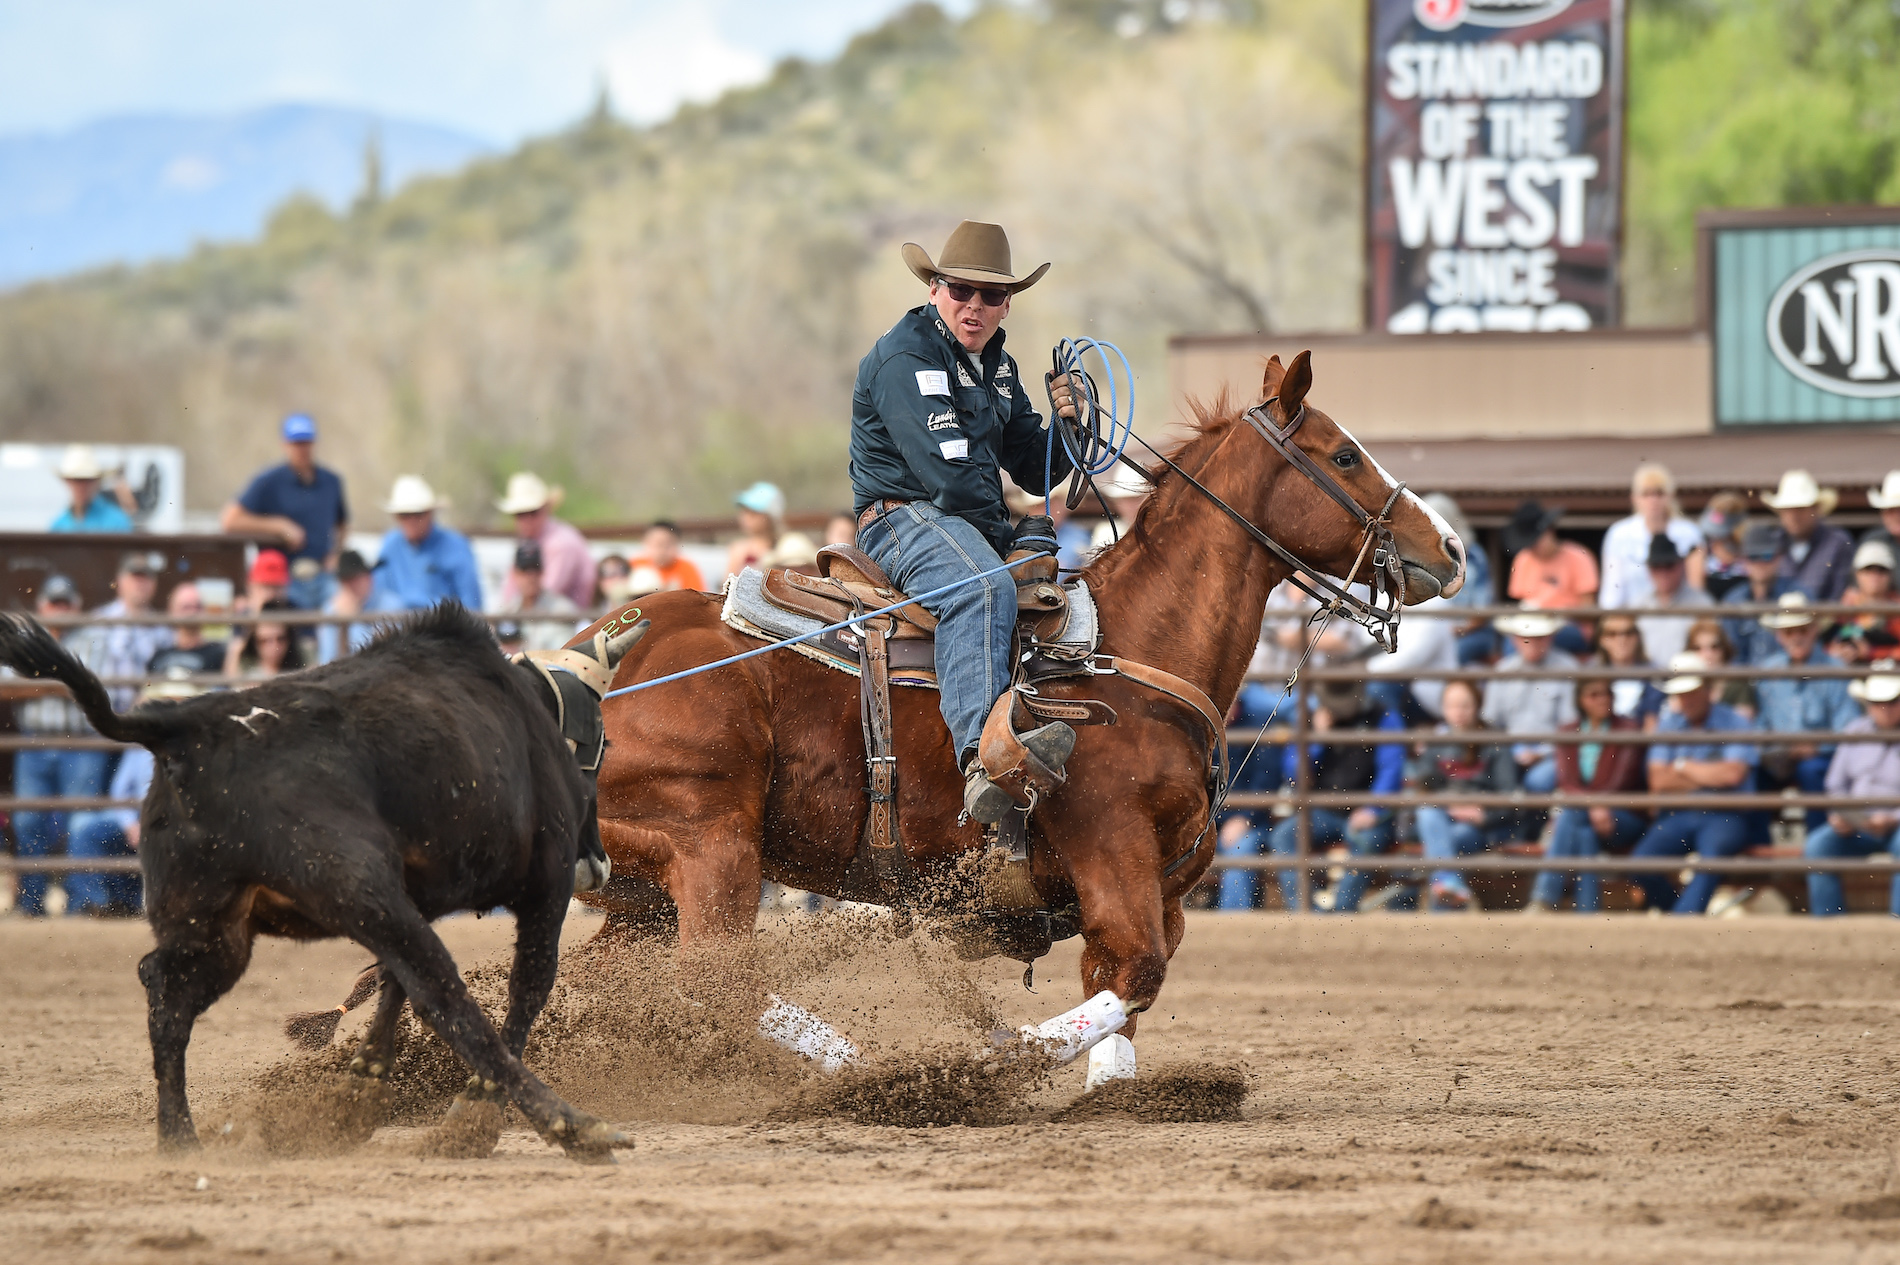 Arizona Horses for Sale | Rancho Rio Horse Auction 2018 Sale Results